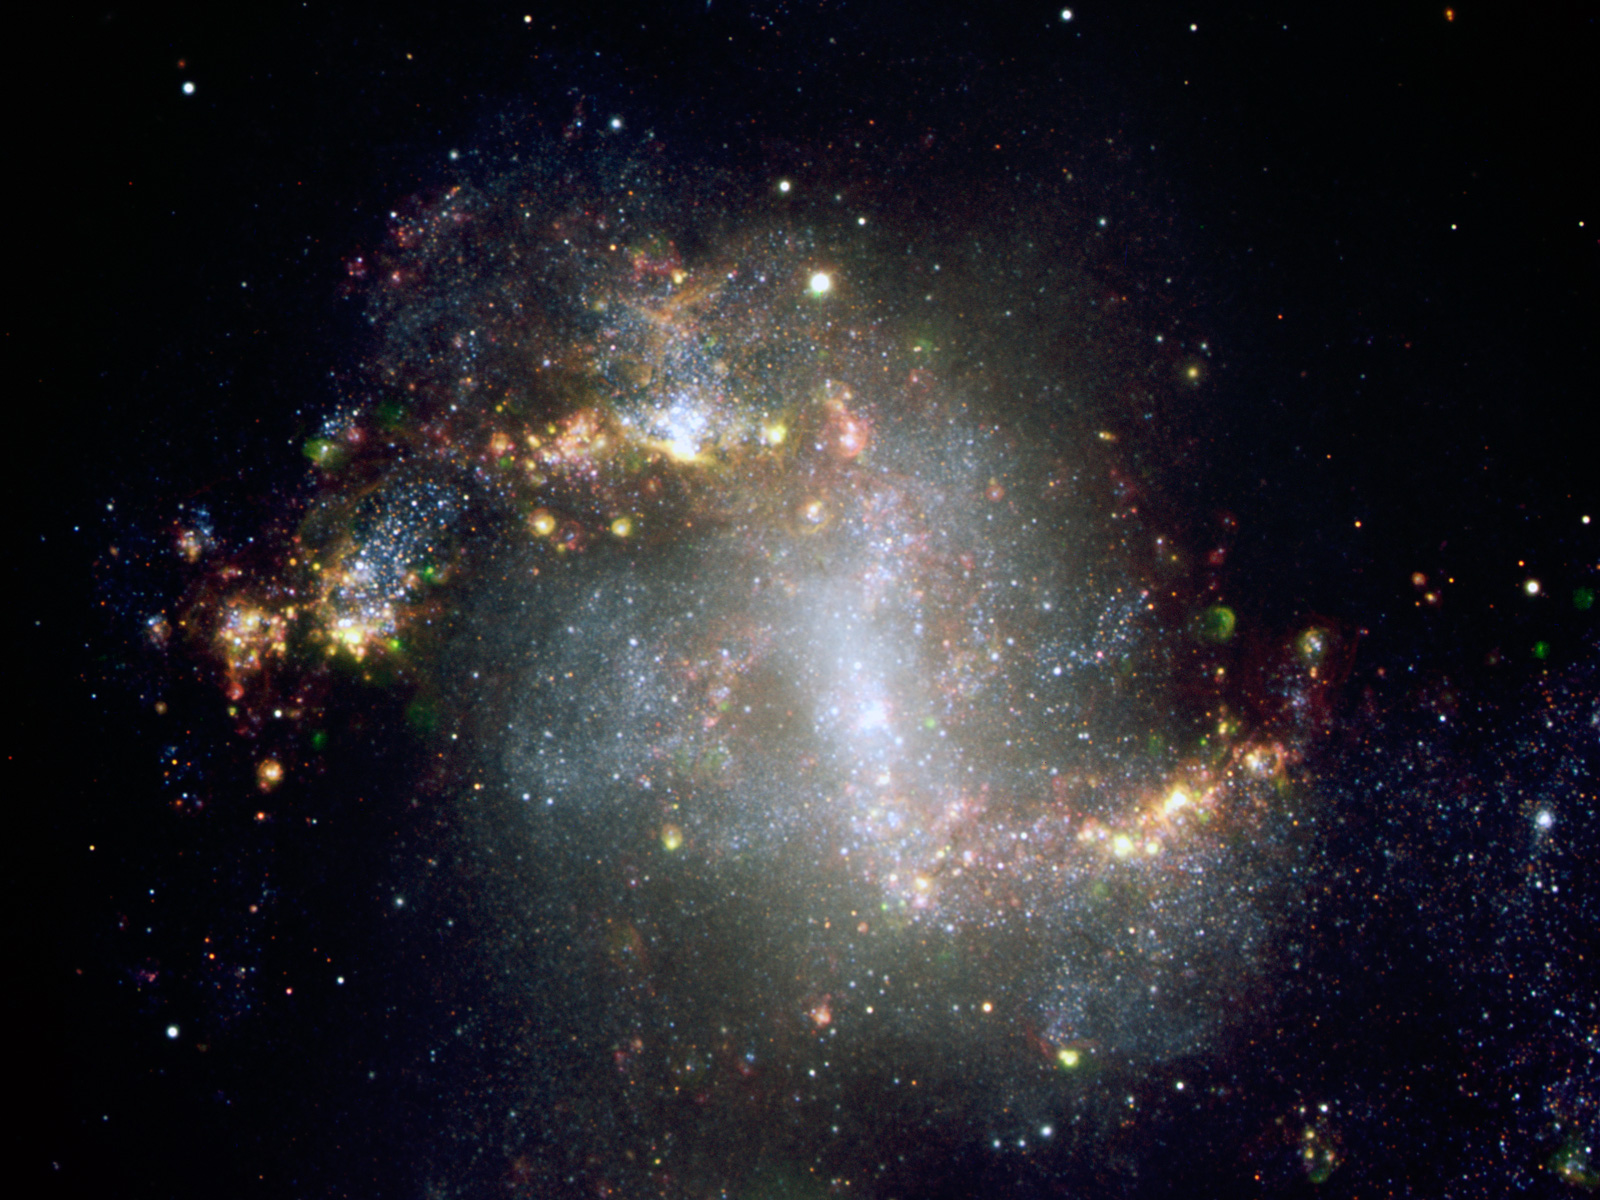 The Topsy-Turvy Galaxy NGC 1313